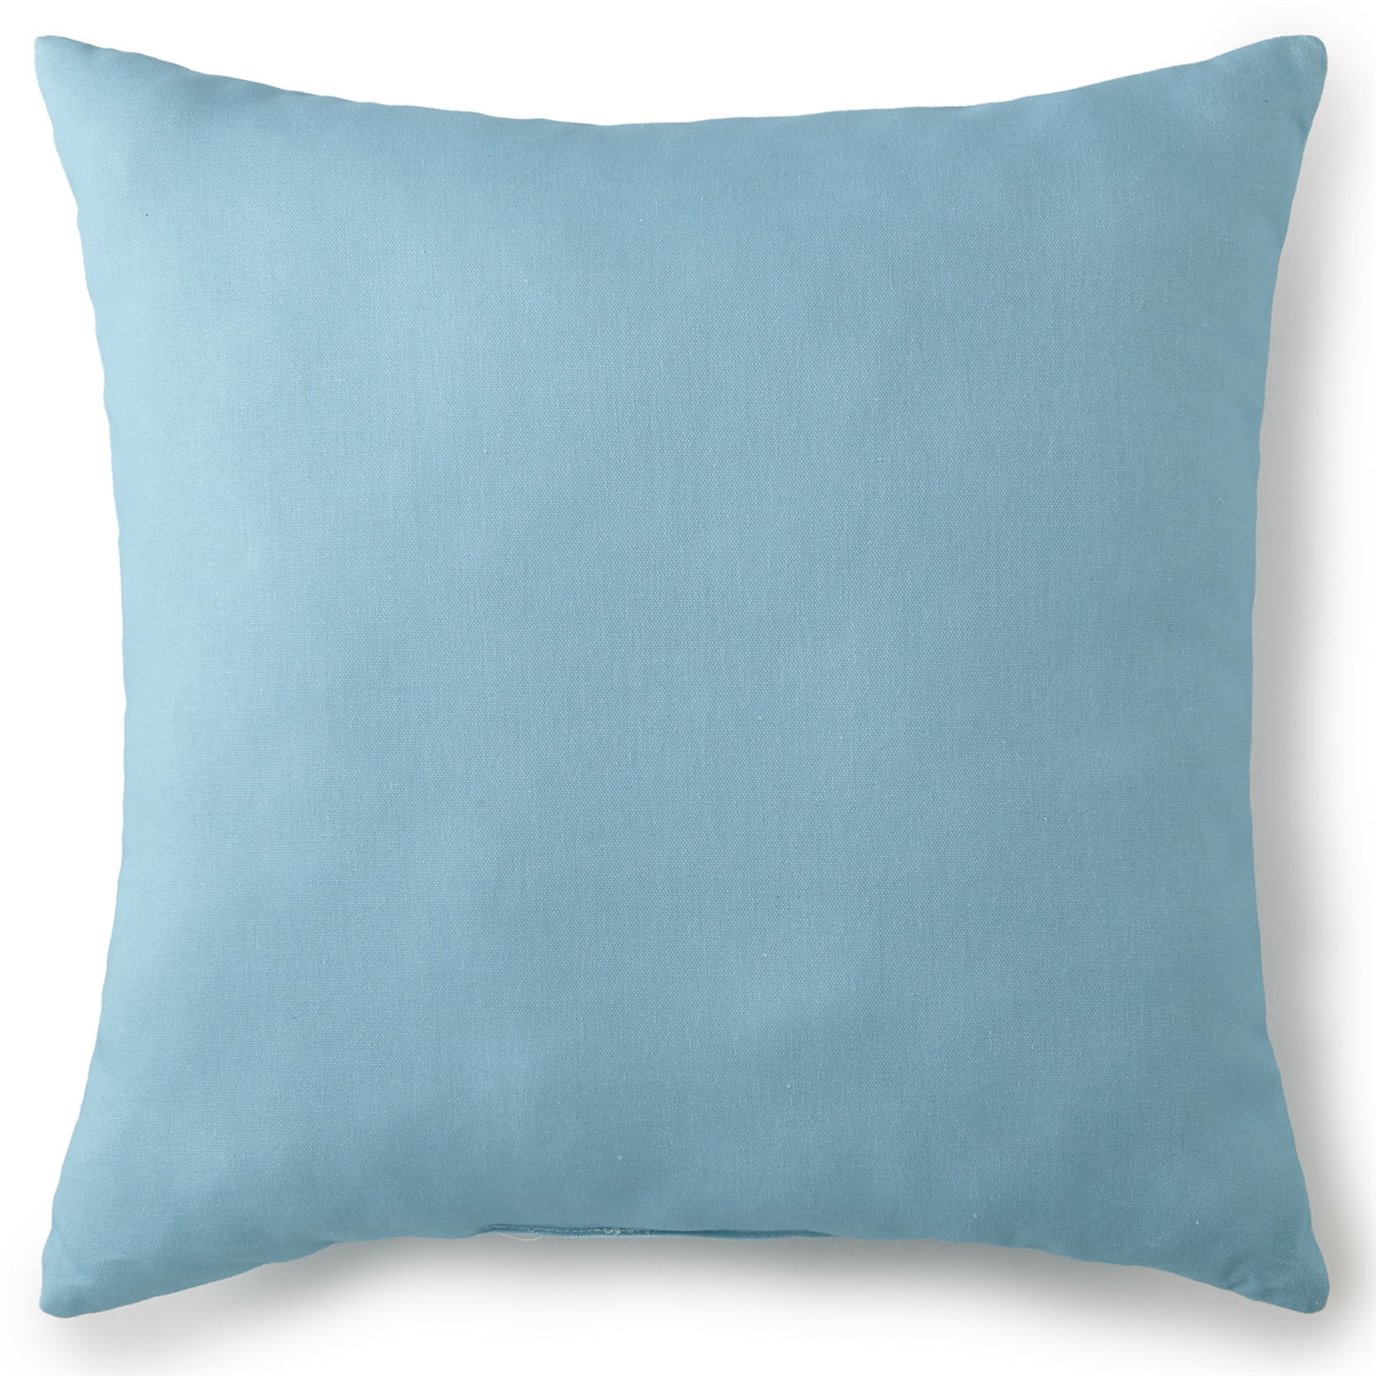 "Tropical Bloom Square Cushion 20""x20"" - Solid Aqua"